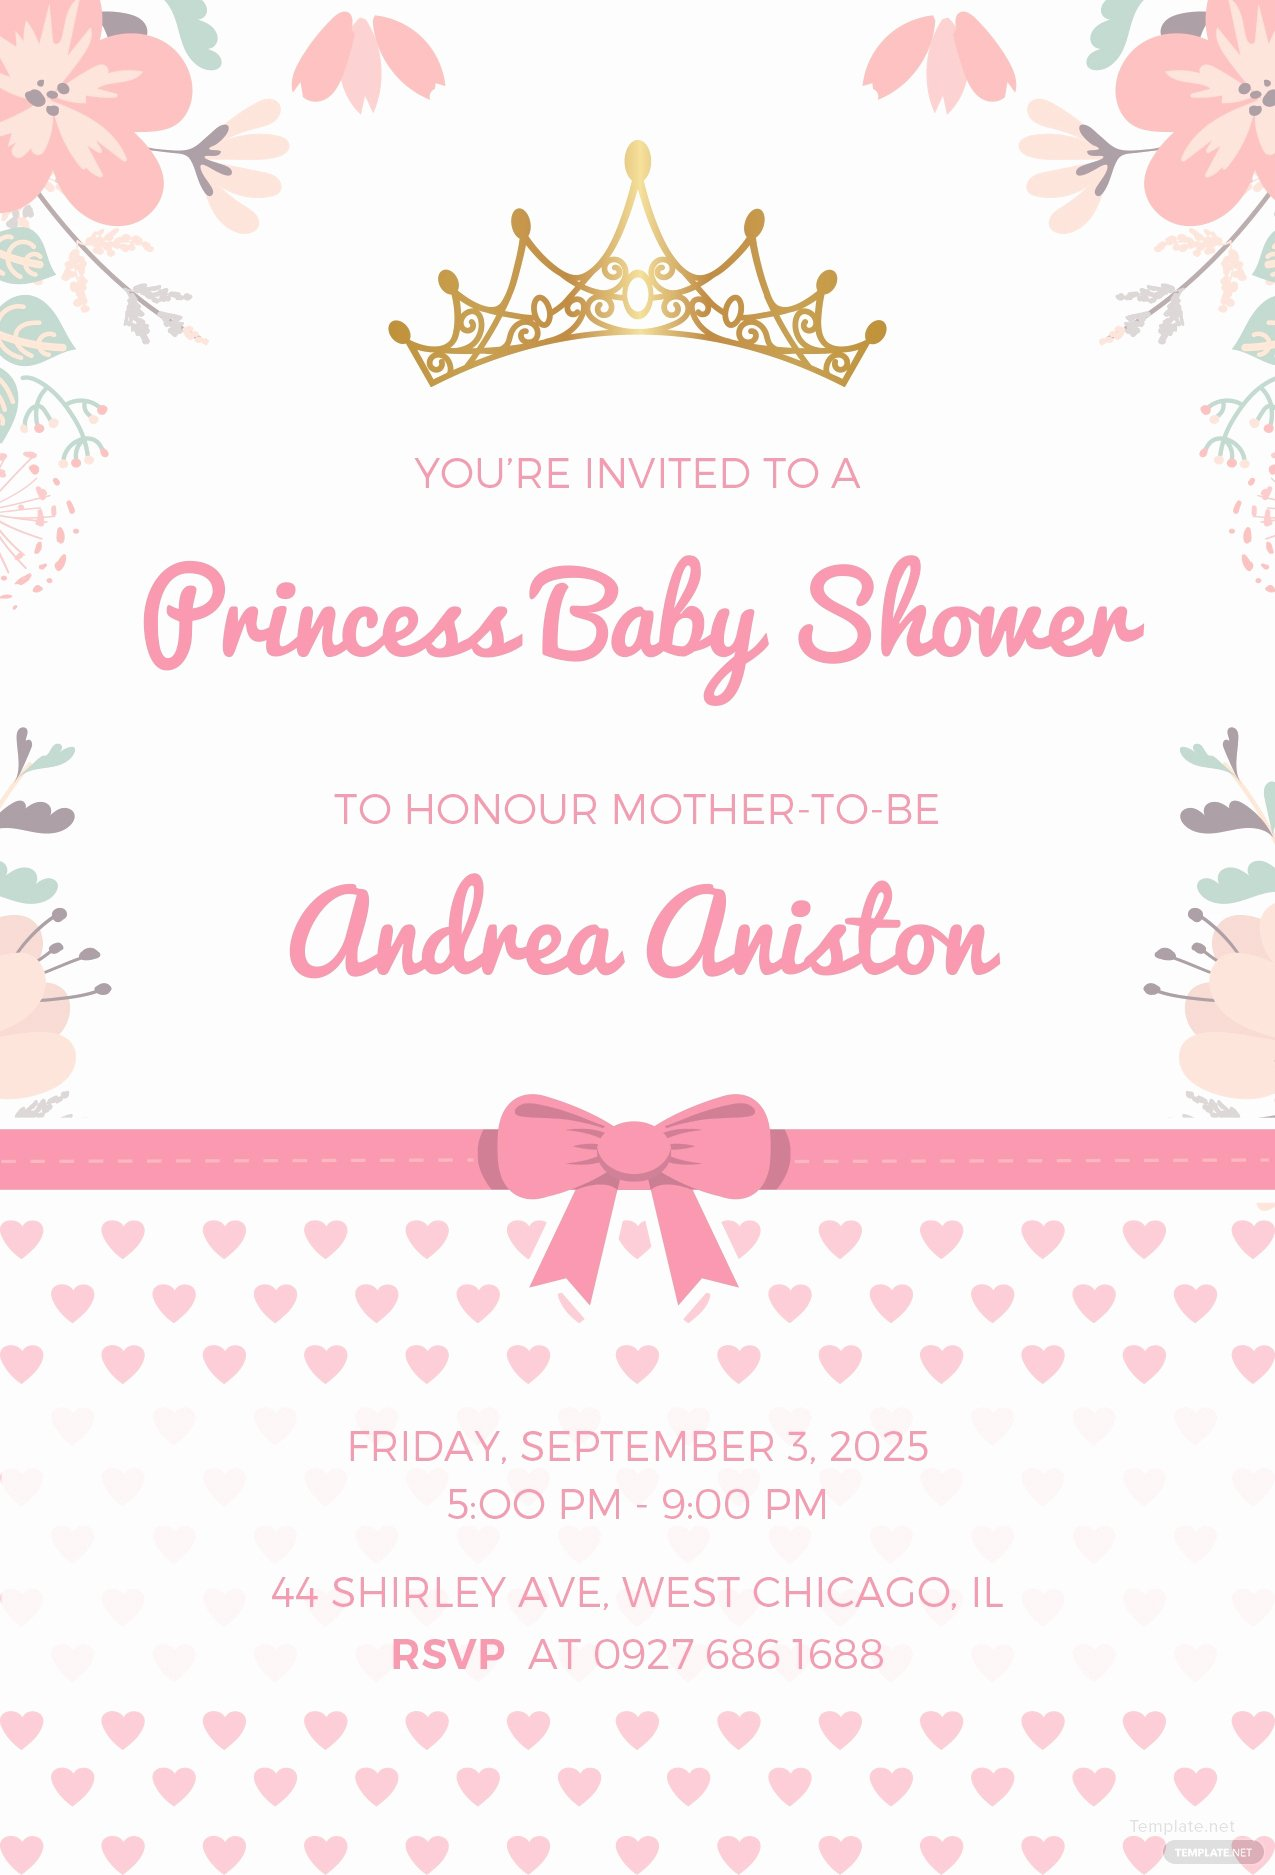 Free Princess Invitation Template Lovely Free Princess Baby Shower Invitation Template In Microsoft